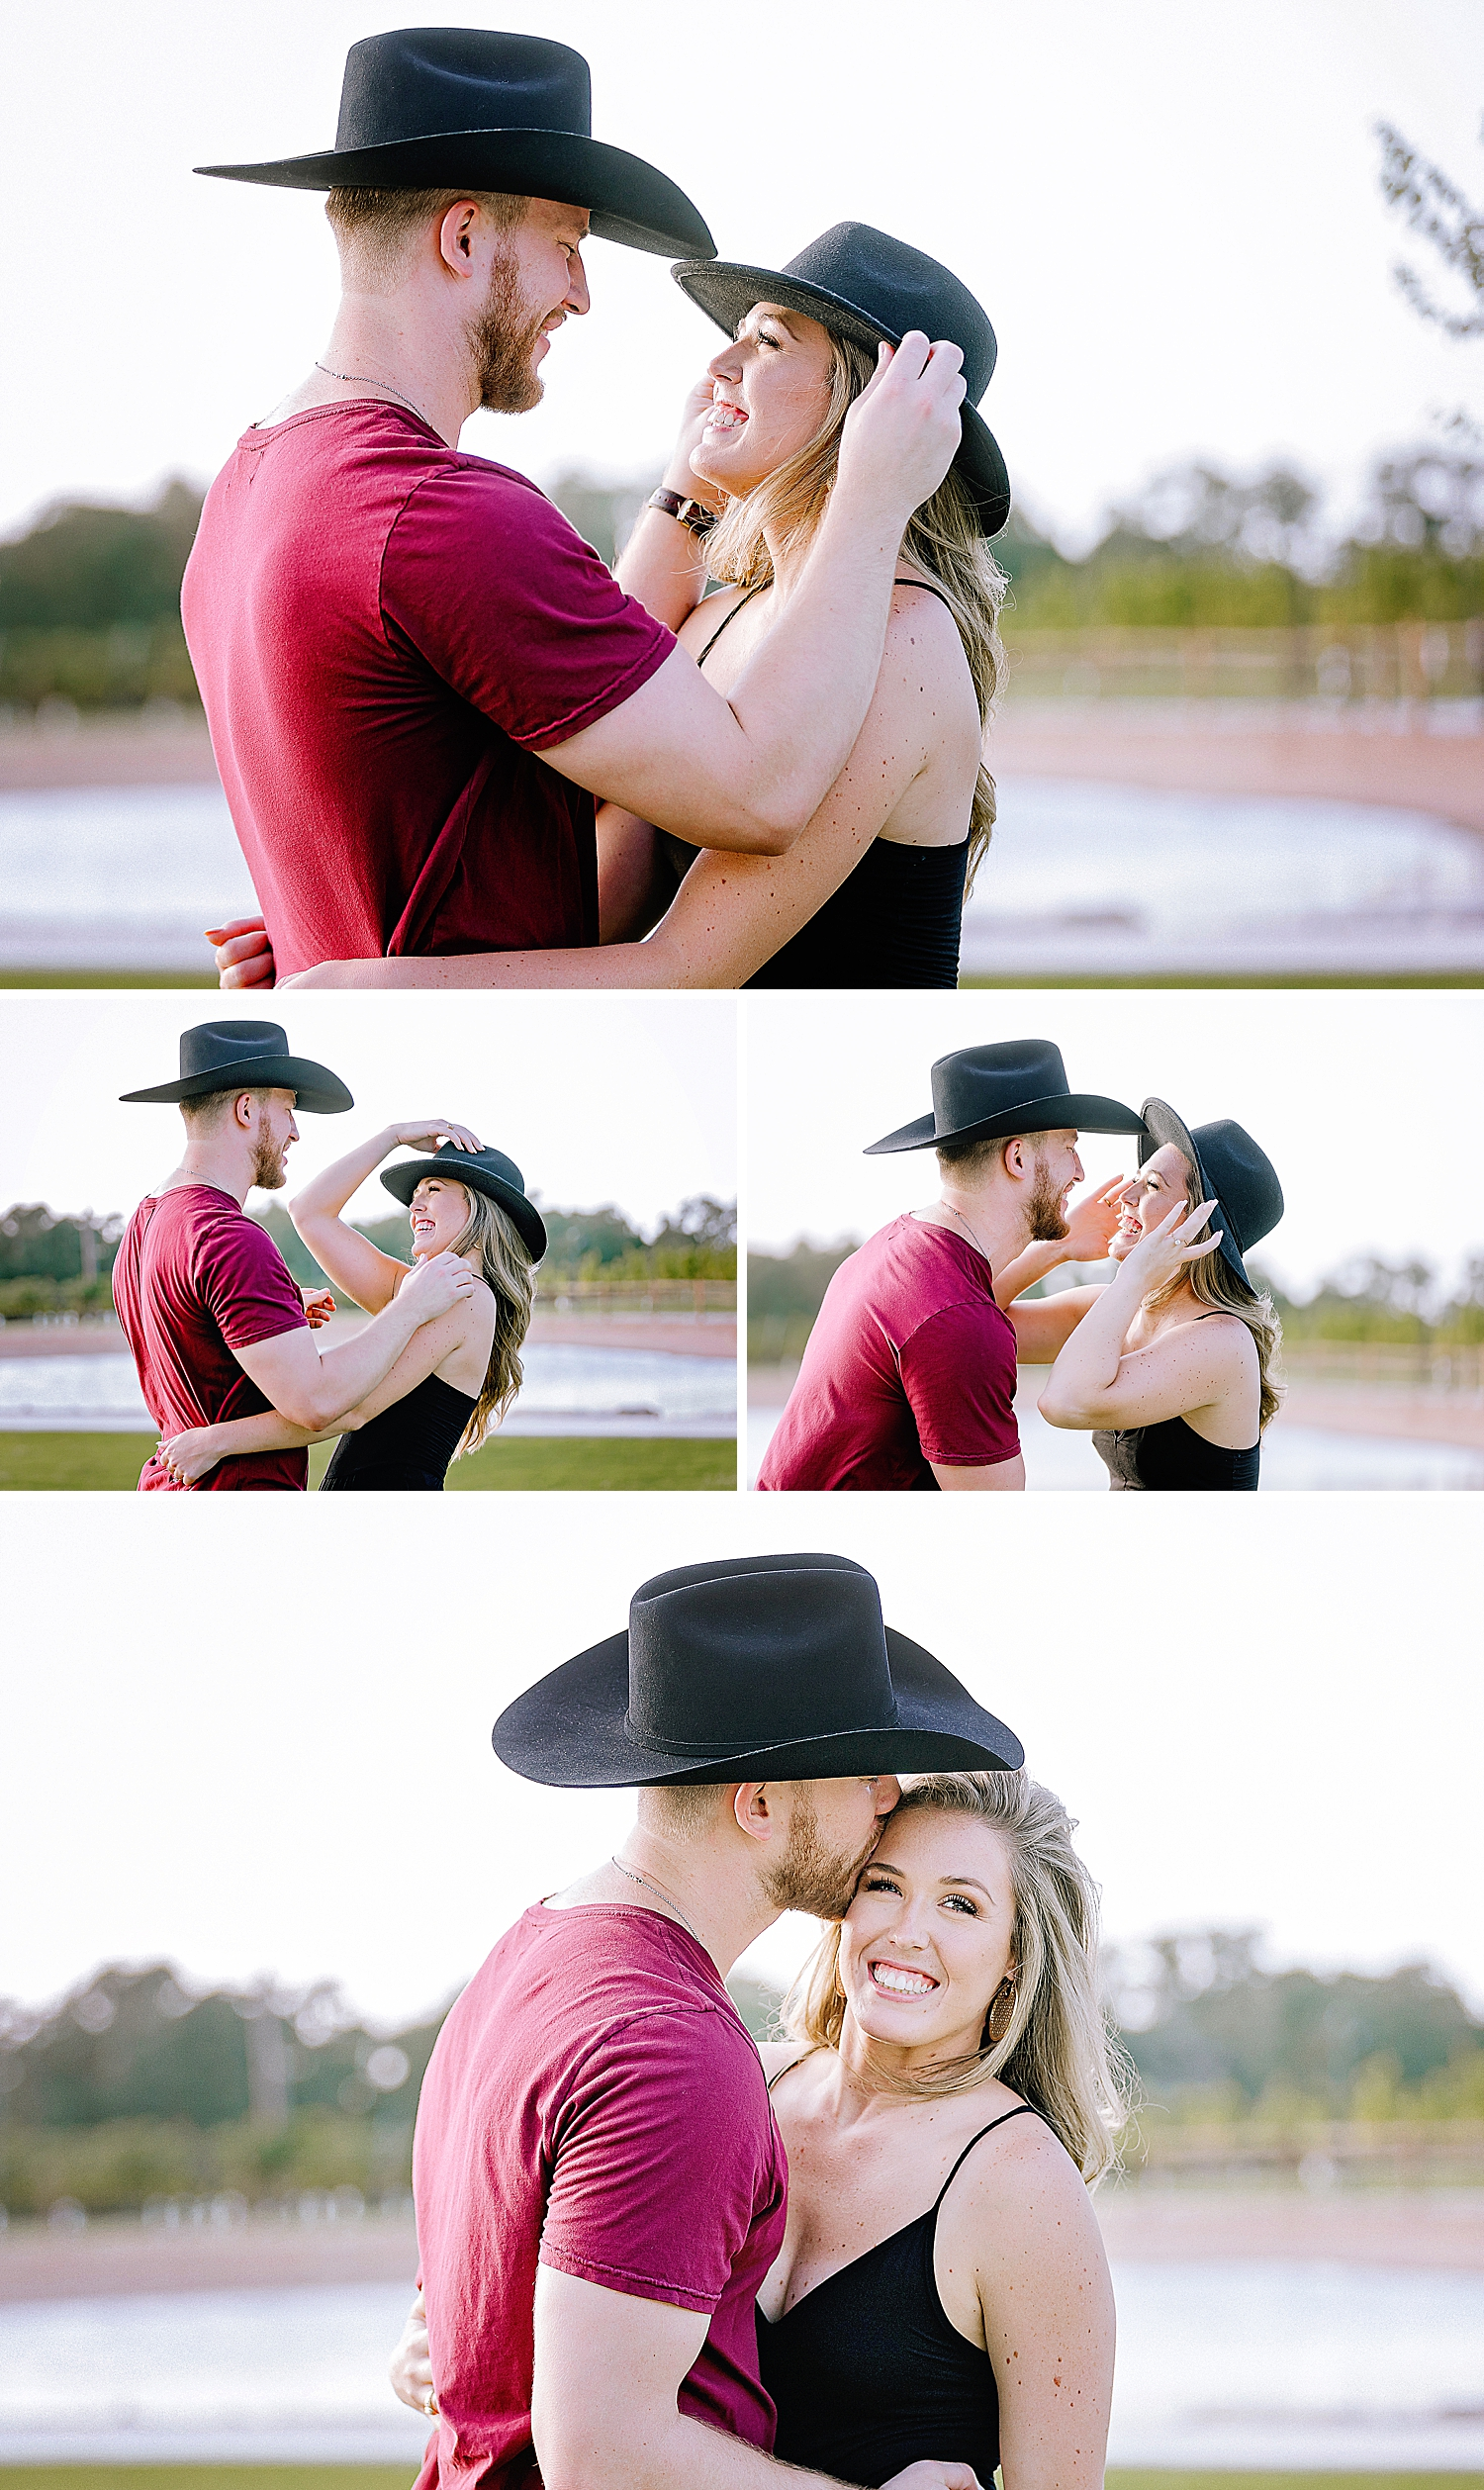 Carly-Barton-Photography-Engagement-Photos-College-Station-Texas-The-Weinberg-at-Wixon-Valley_0029.jpg